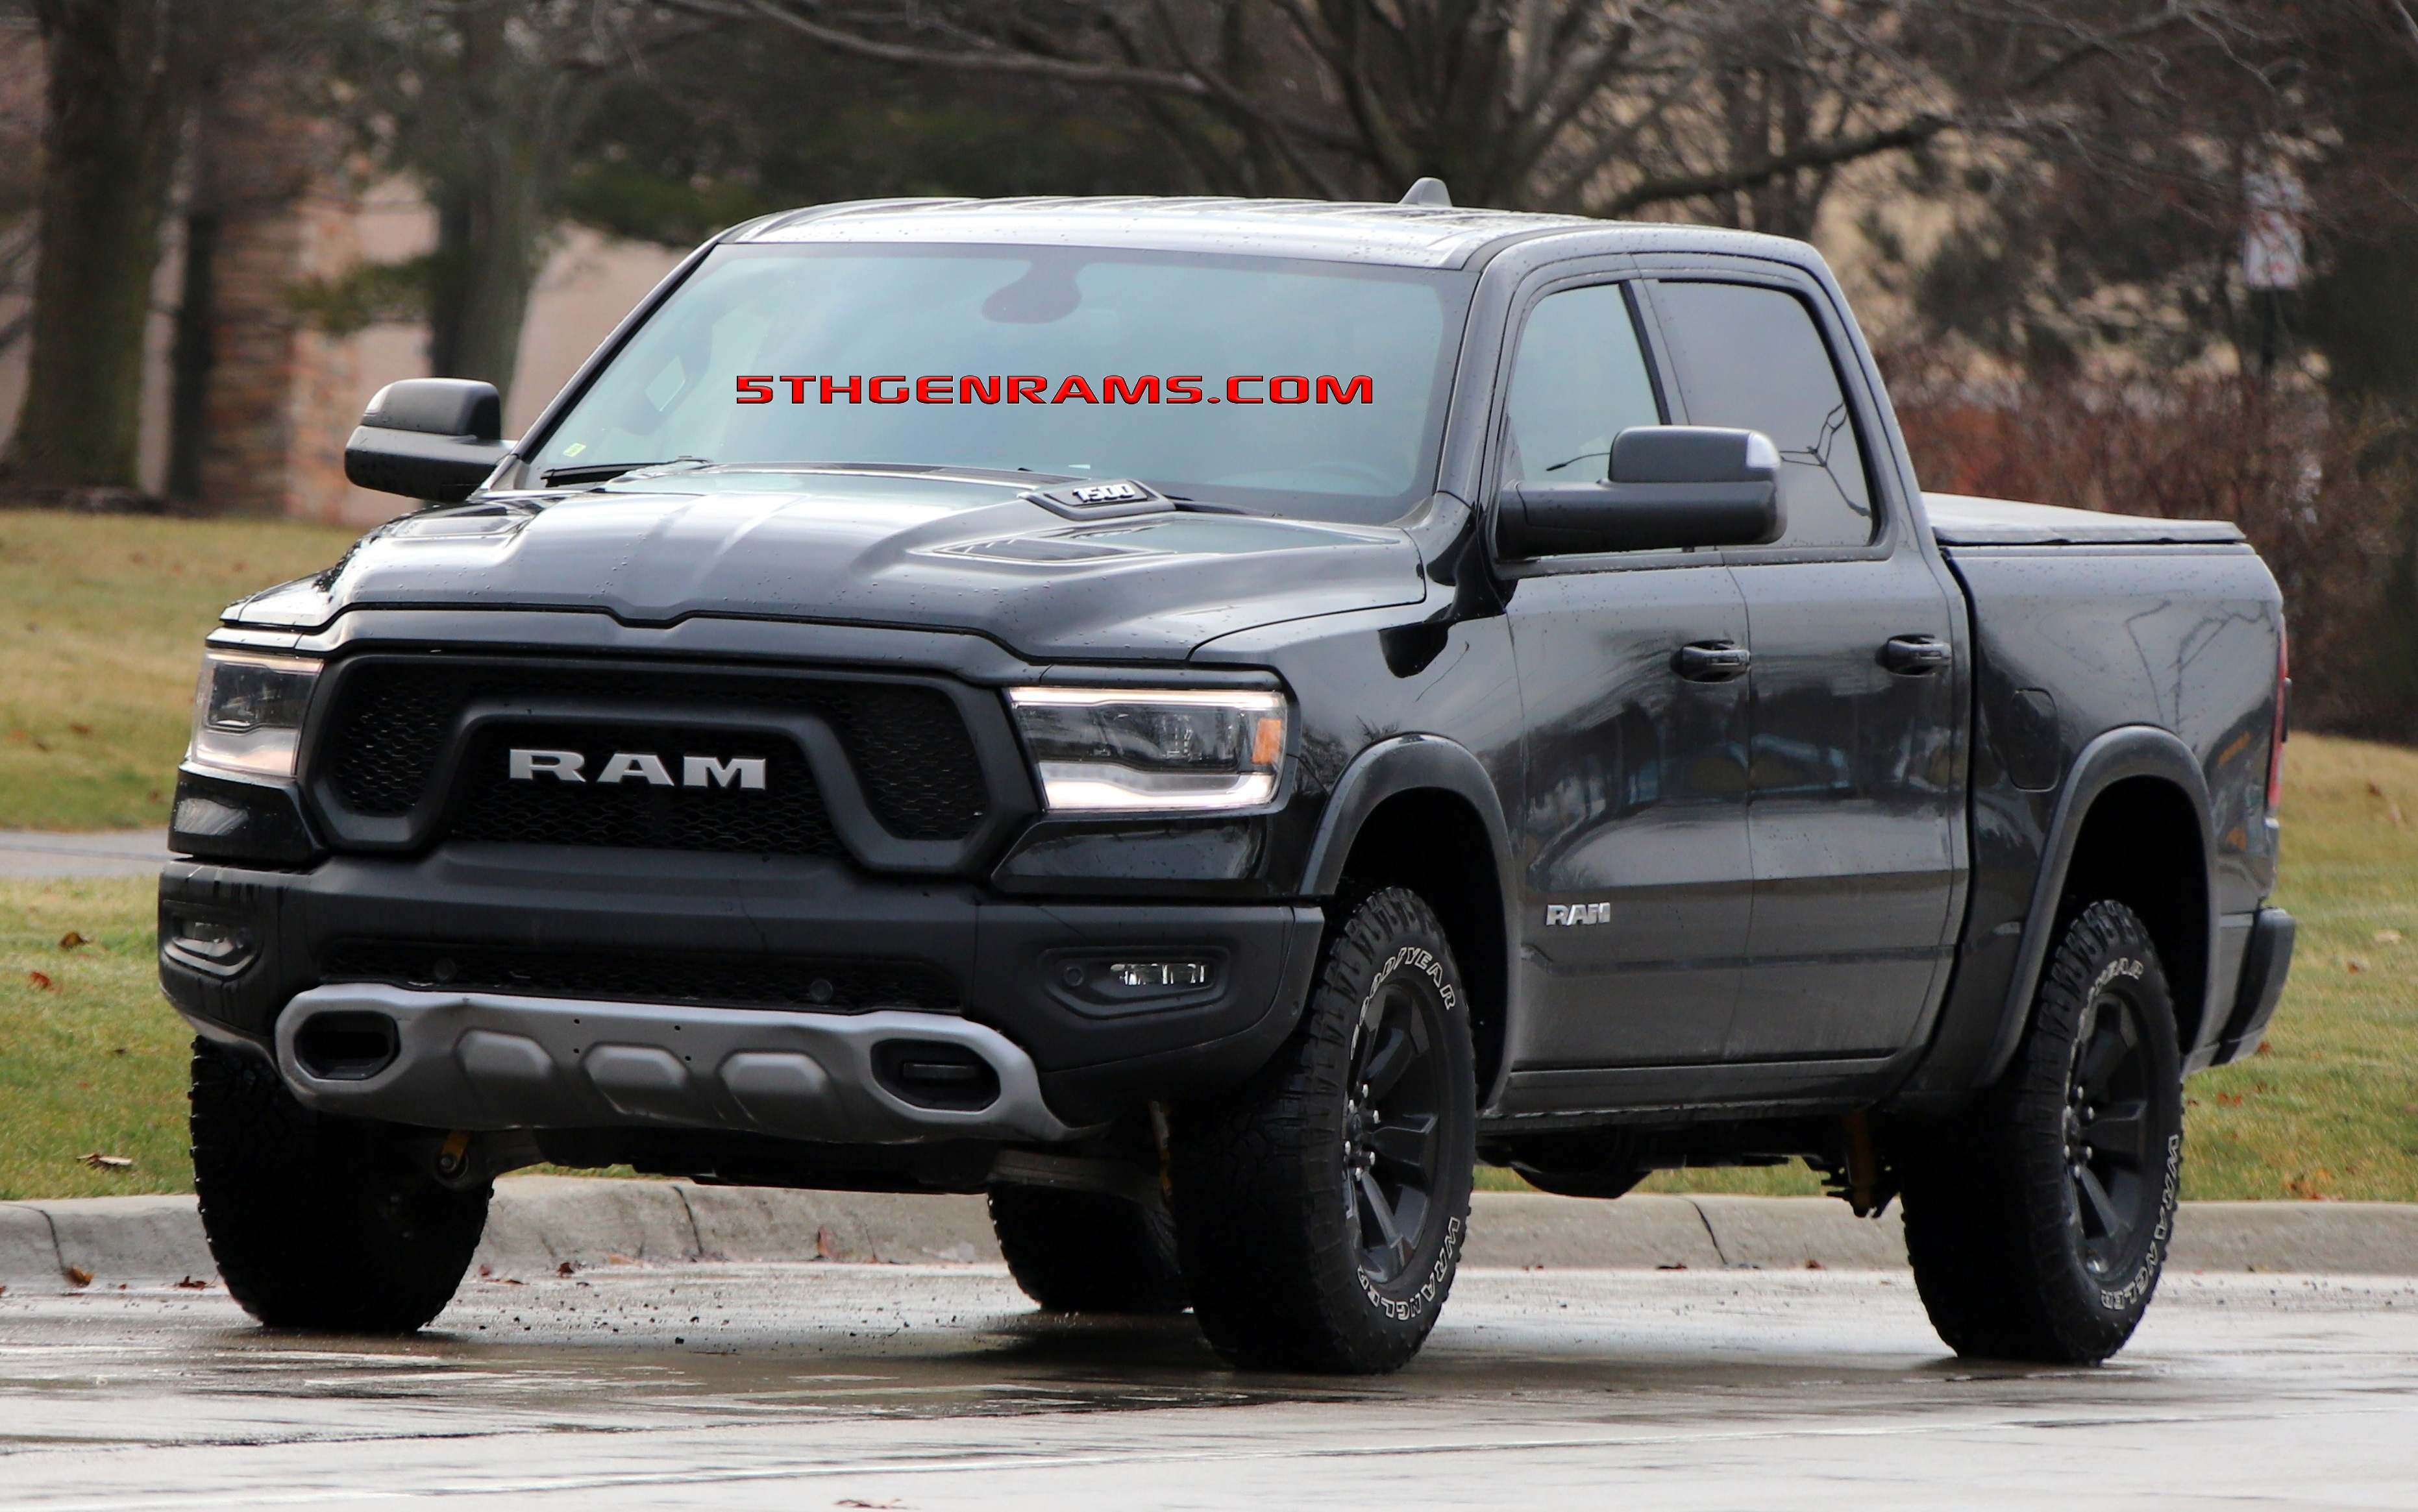 Ecodiesel >> Caught Ecodiesel 2019 Ram 1500 Rebel On The Streets 5th